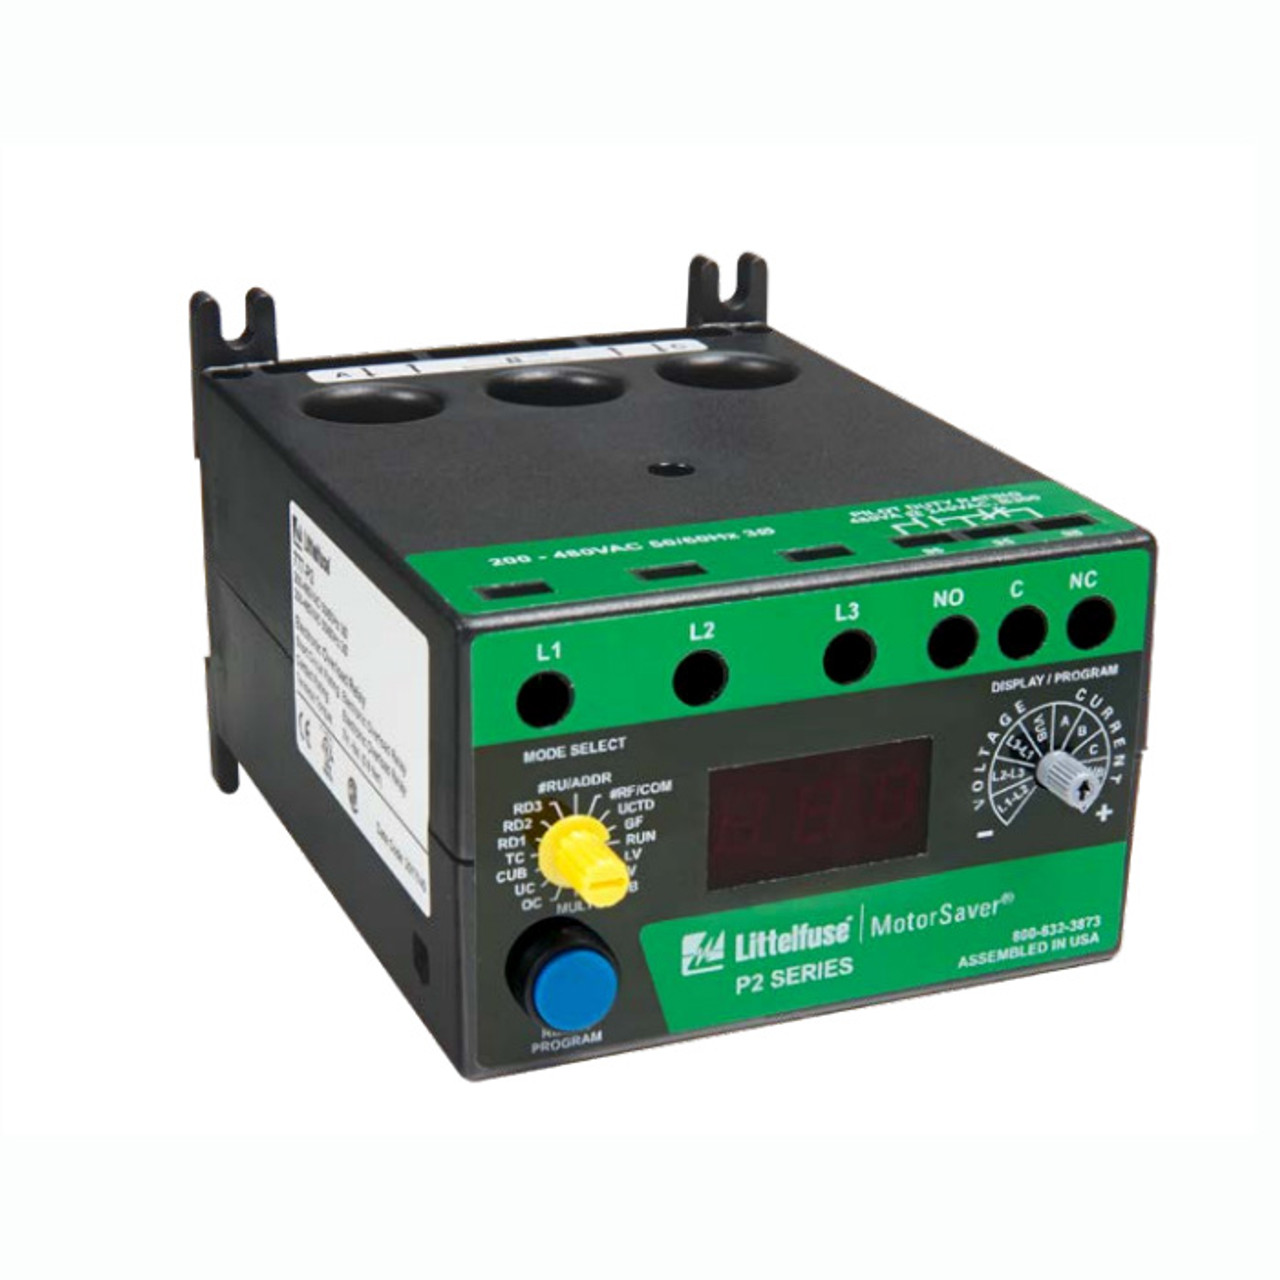 3-PHASE OVERLOAD RELAY 200 to 480VAC